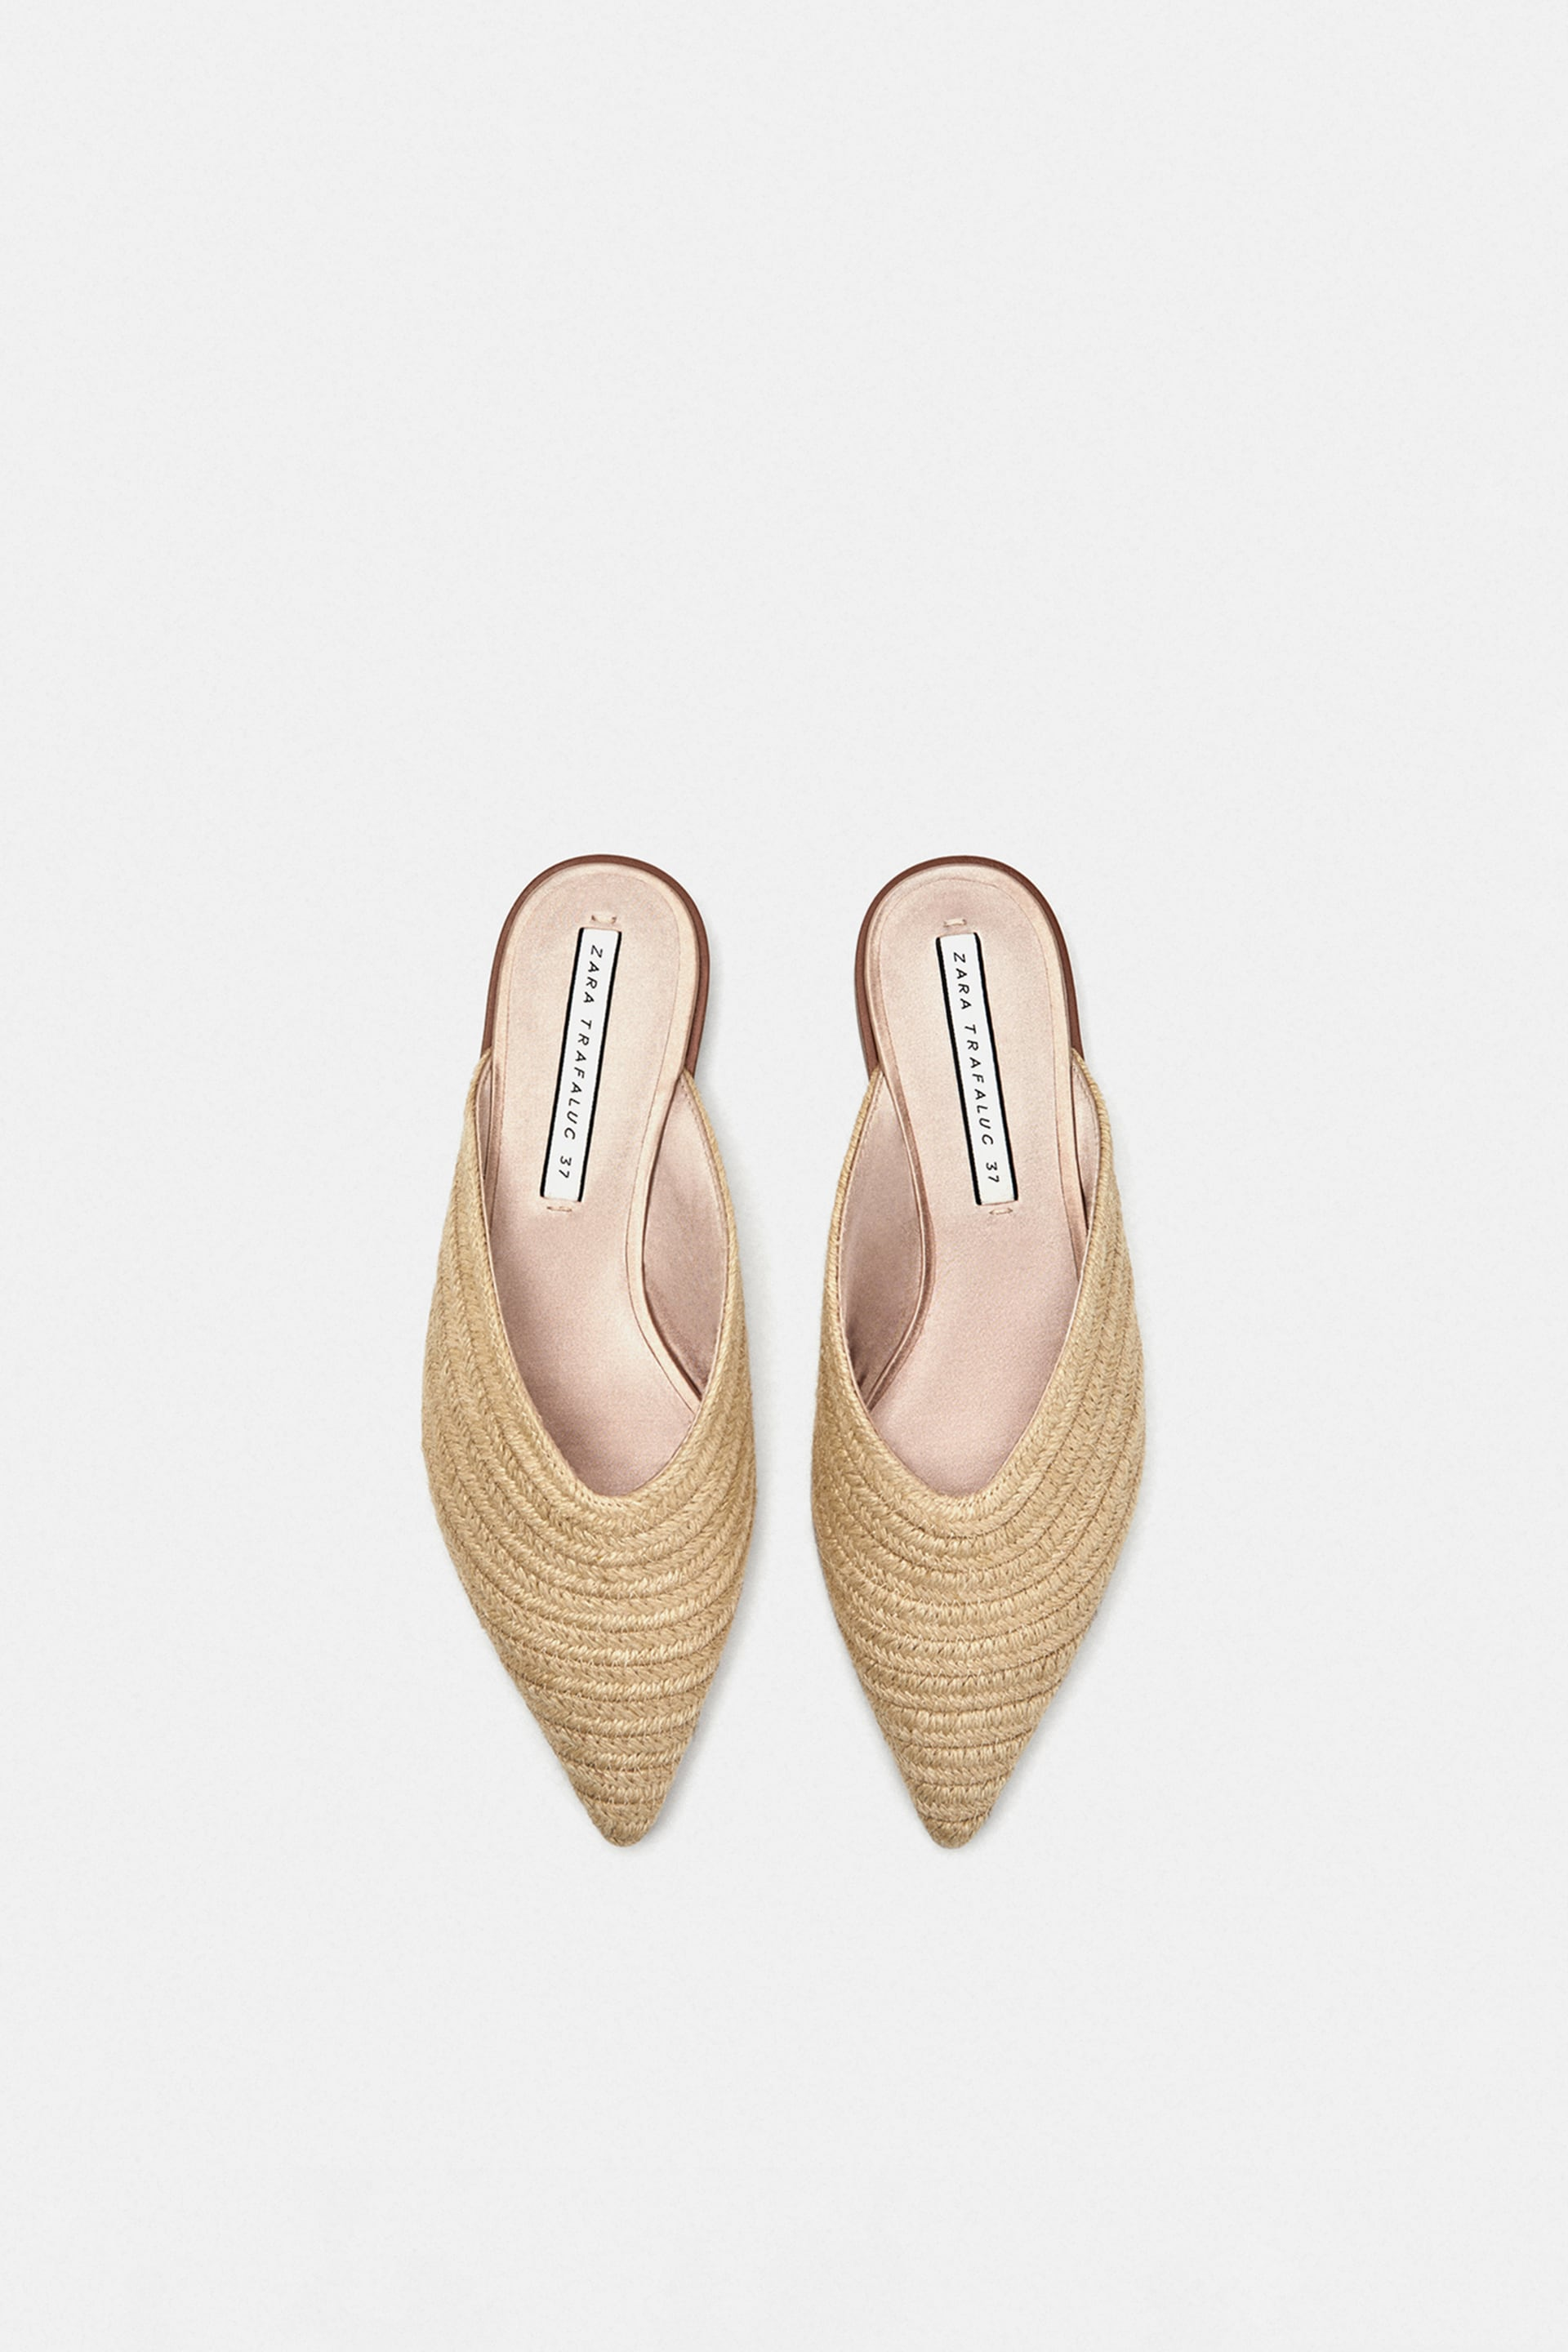 Braided Mules  View All Bags Woman Sale by Zara